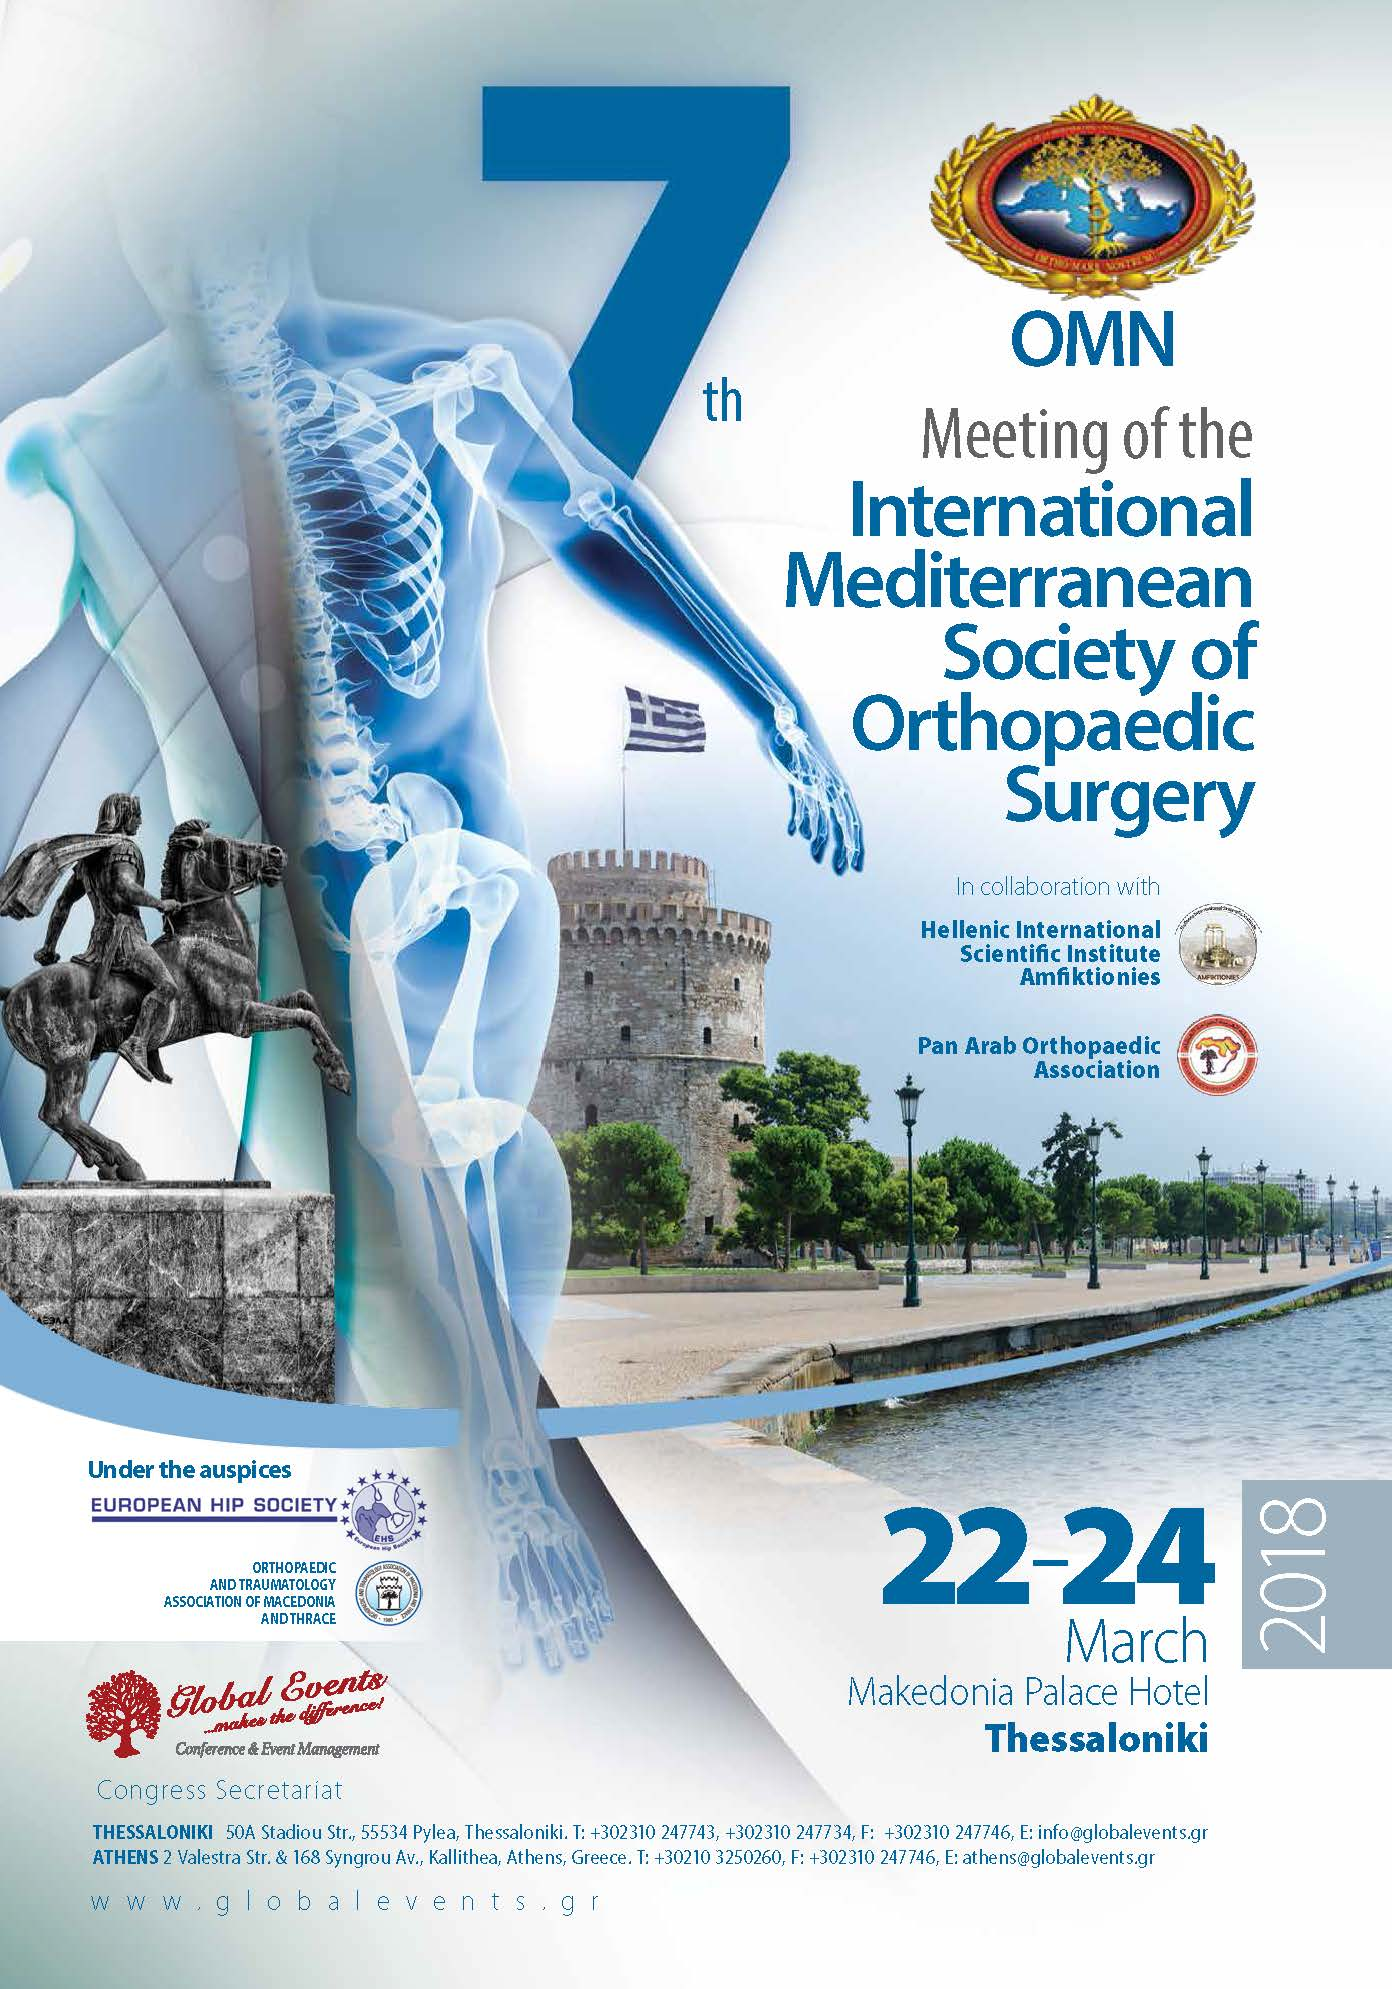 365. 7th Meeting of the International Mediterranean Society of Orthopaedic Surgery